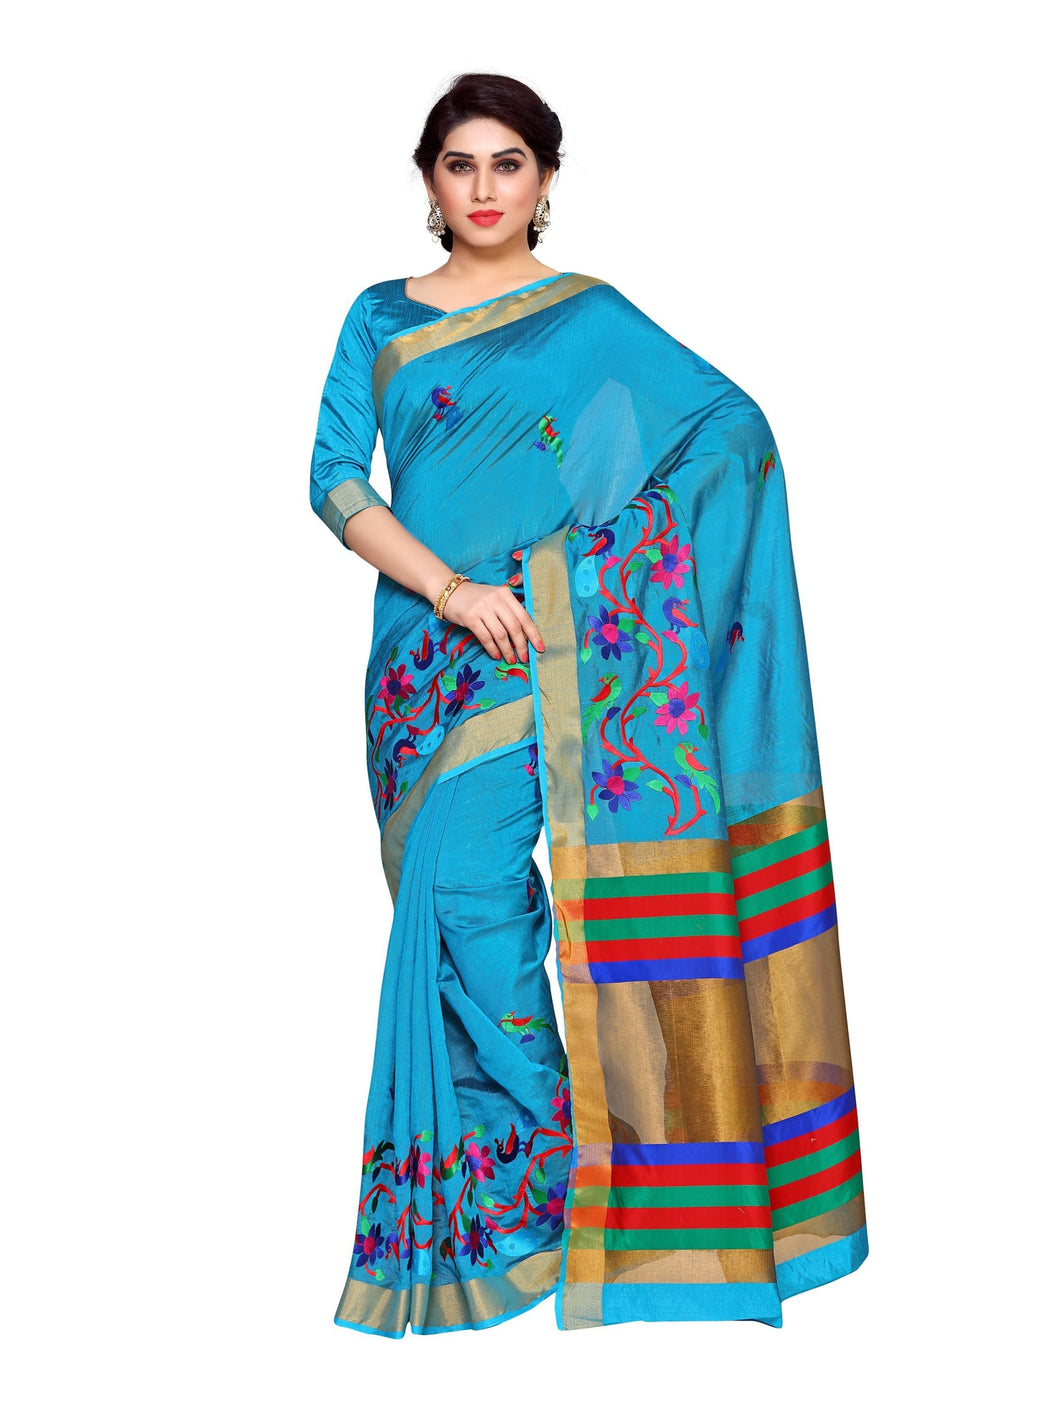 MIMOSA Latest Collection Hand Embroidery Work Art Silk Kanjivaram Style Saree with Blouse in Color Sky Blue (4137-prs15-am-11-and) - kupindaindia